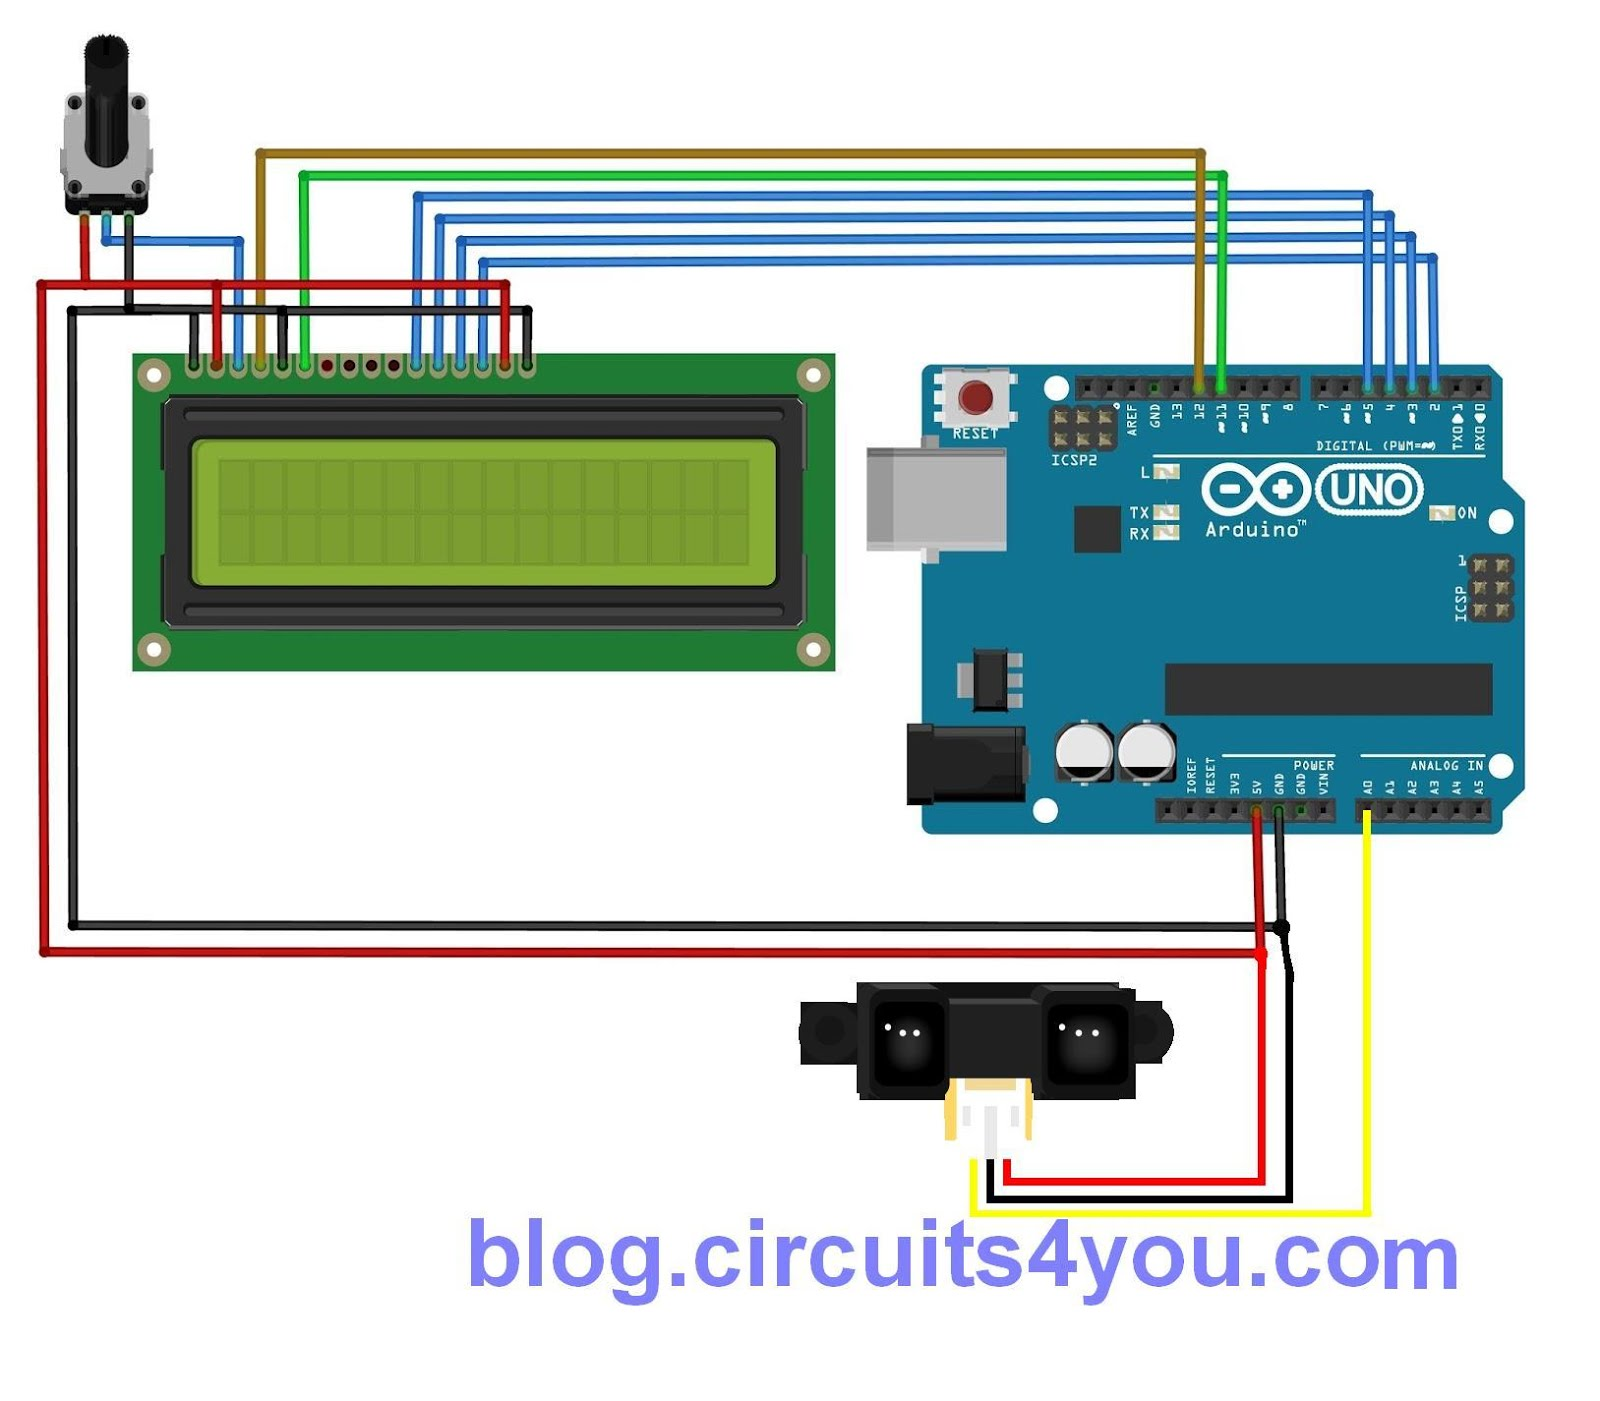 Interfacing Peripherals on the arduino Arduino Infrared